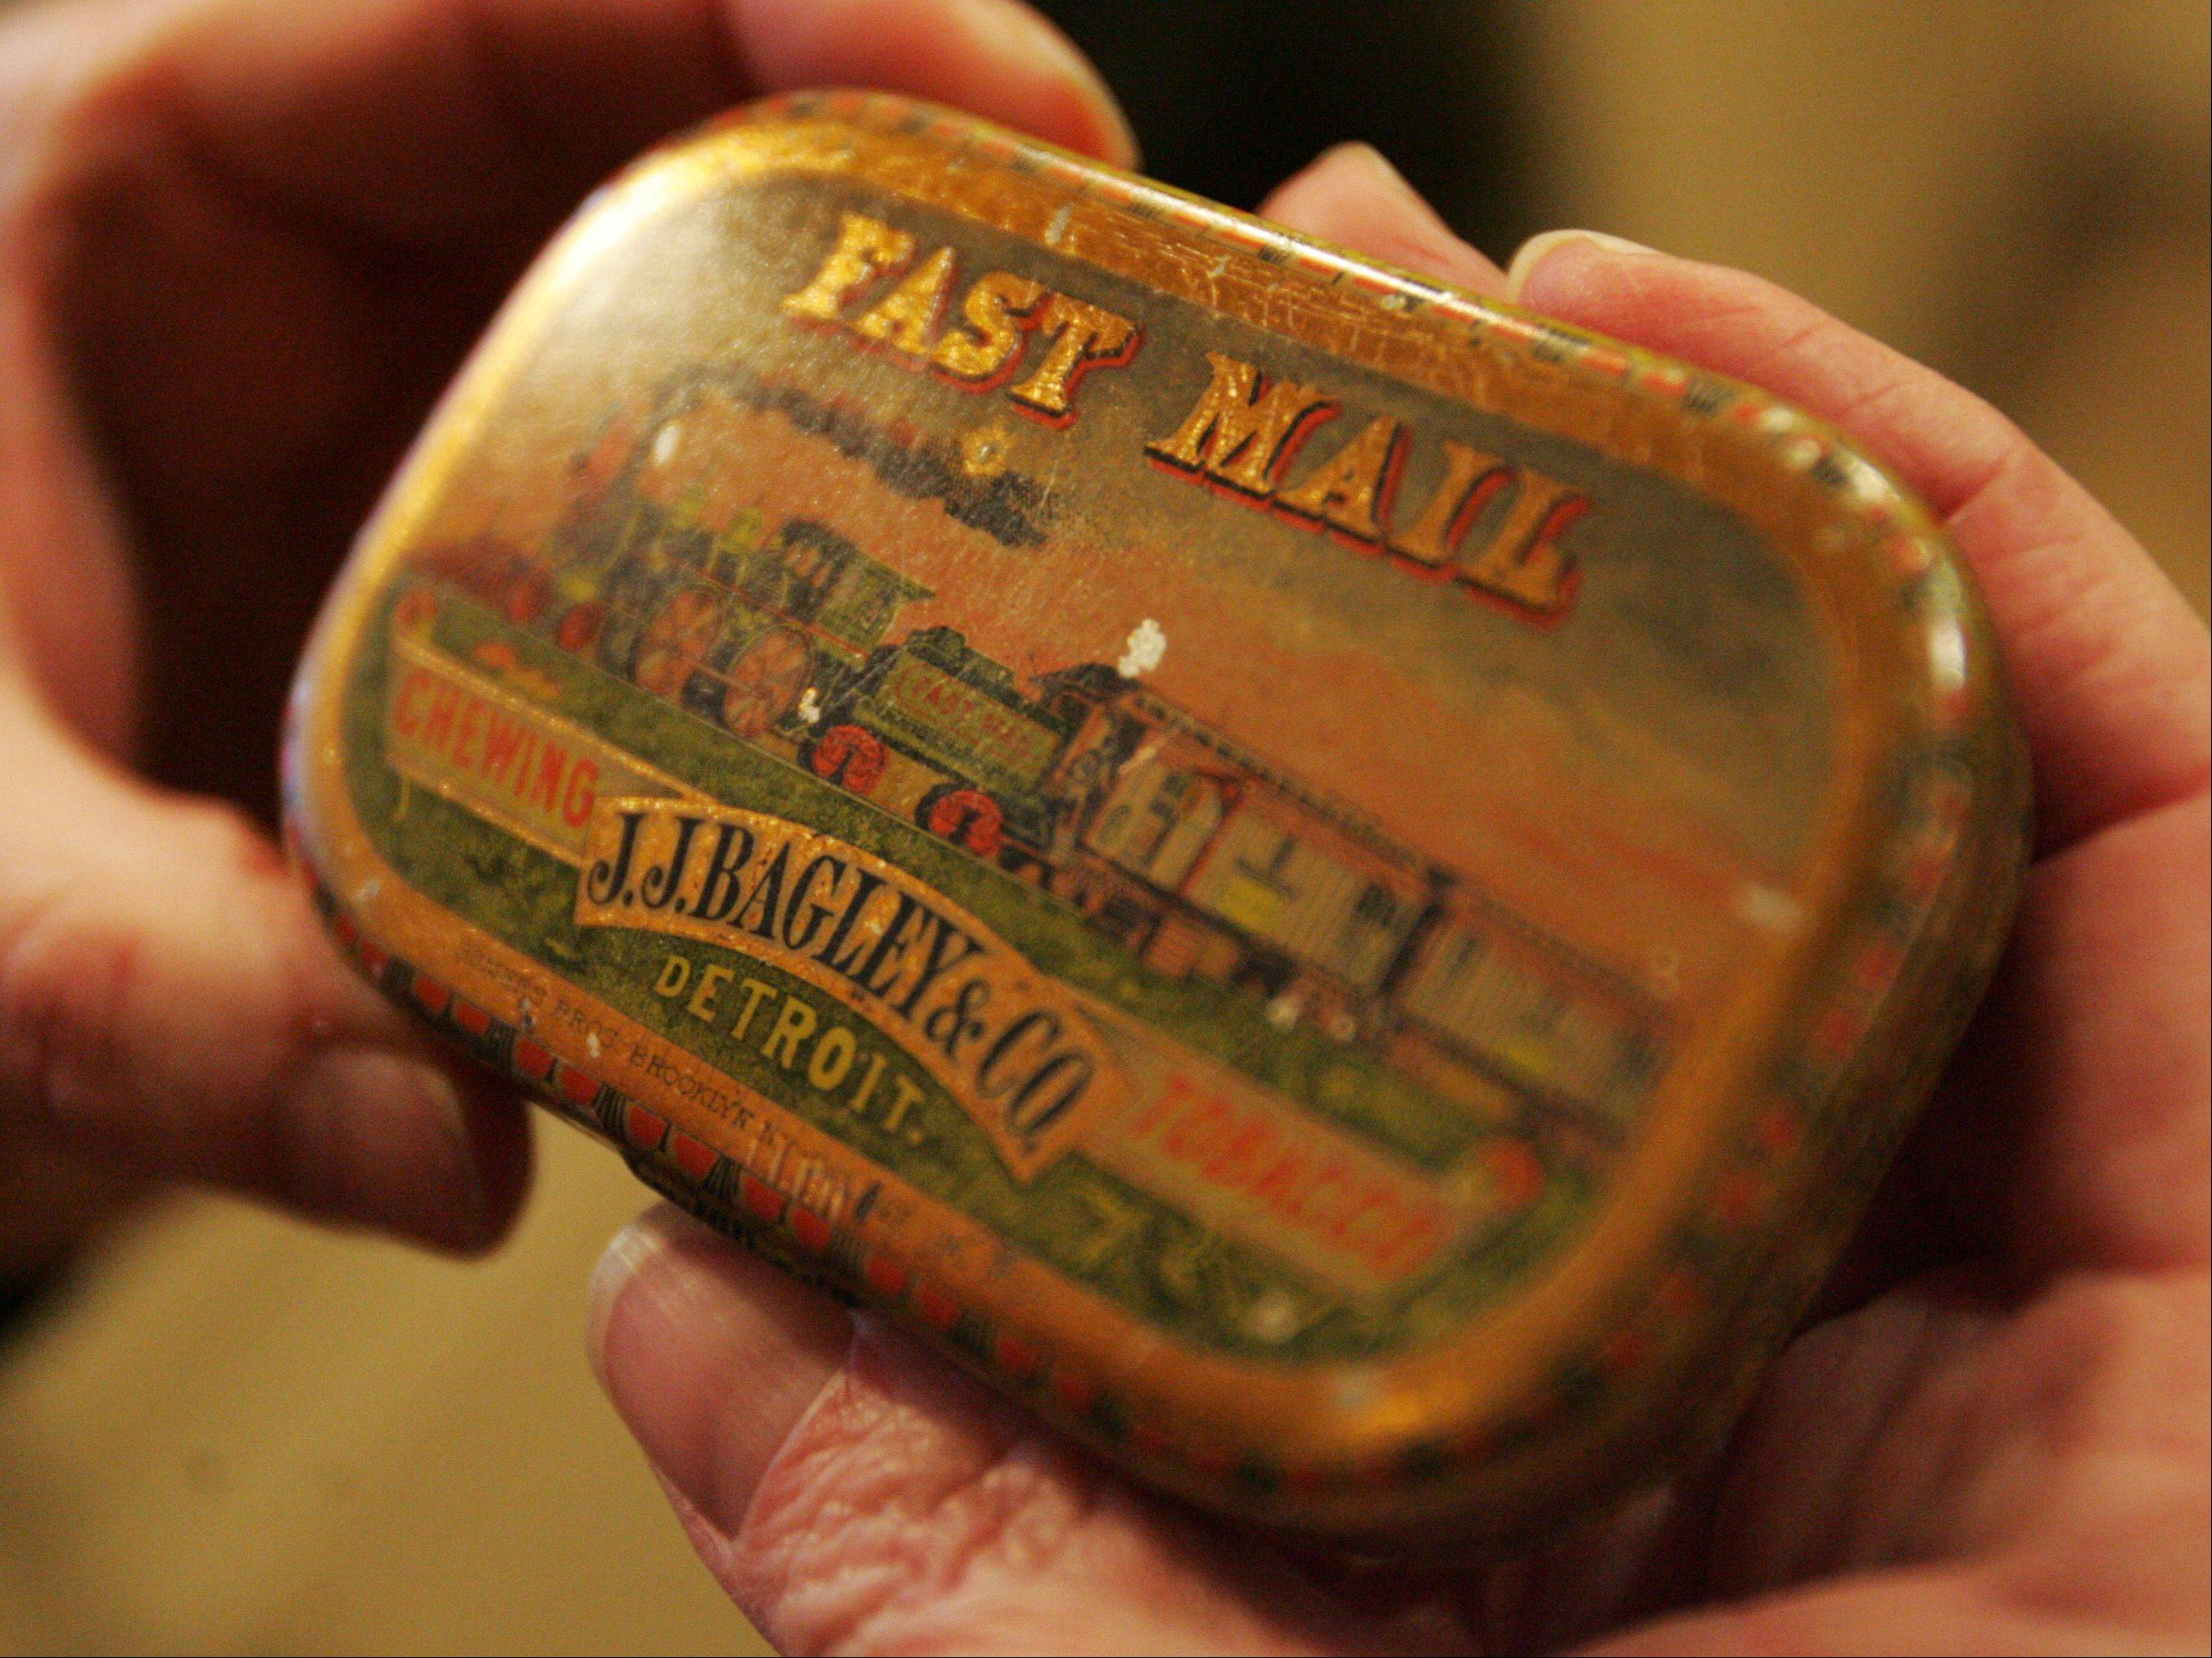 Jim and Maureen Little of Kingston collect antiques large and small. This is an old chewing tobacco container.